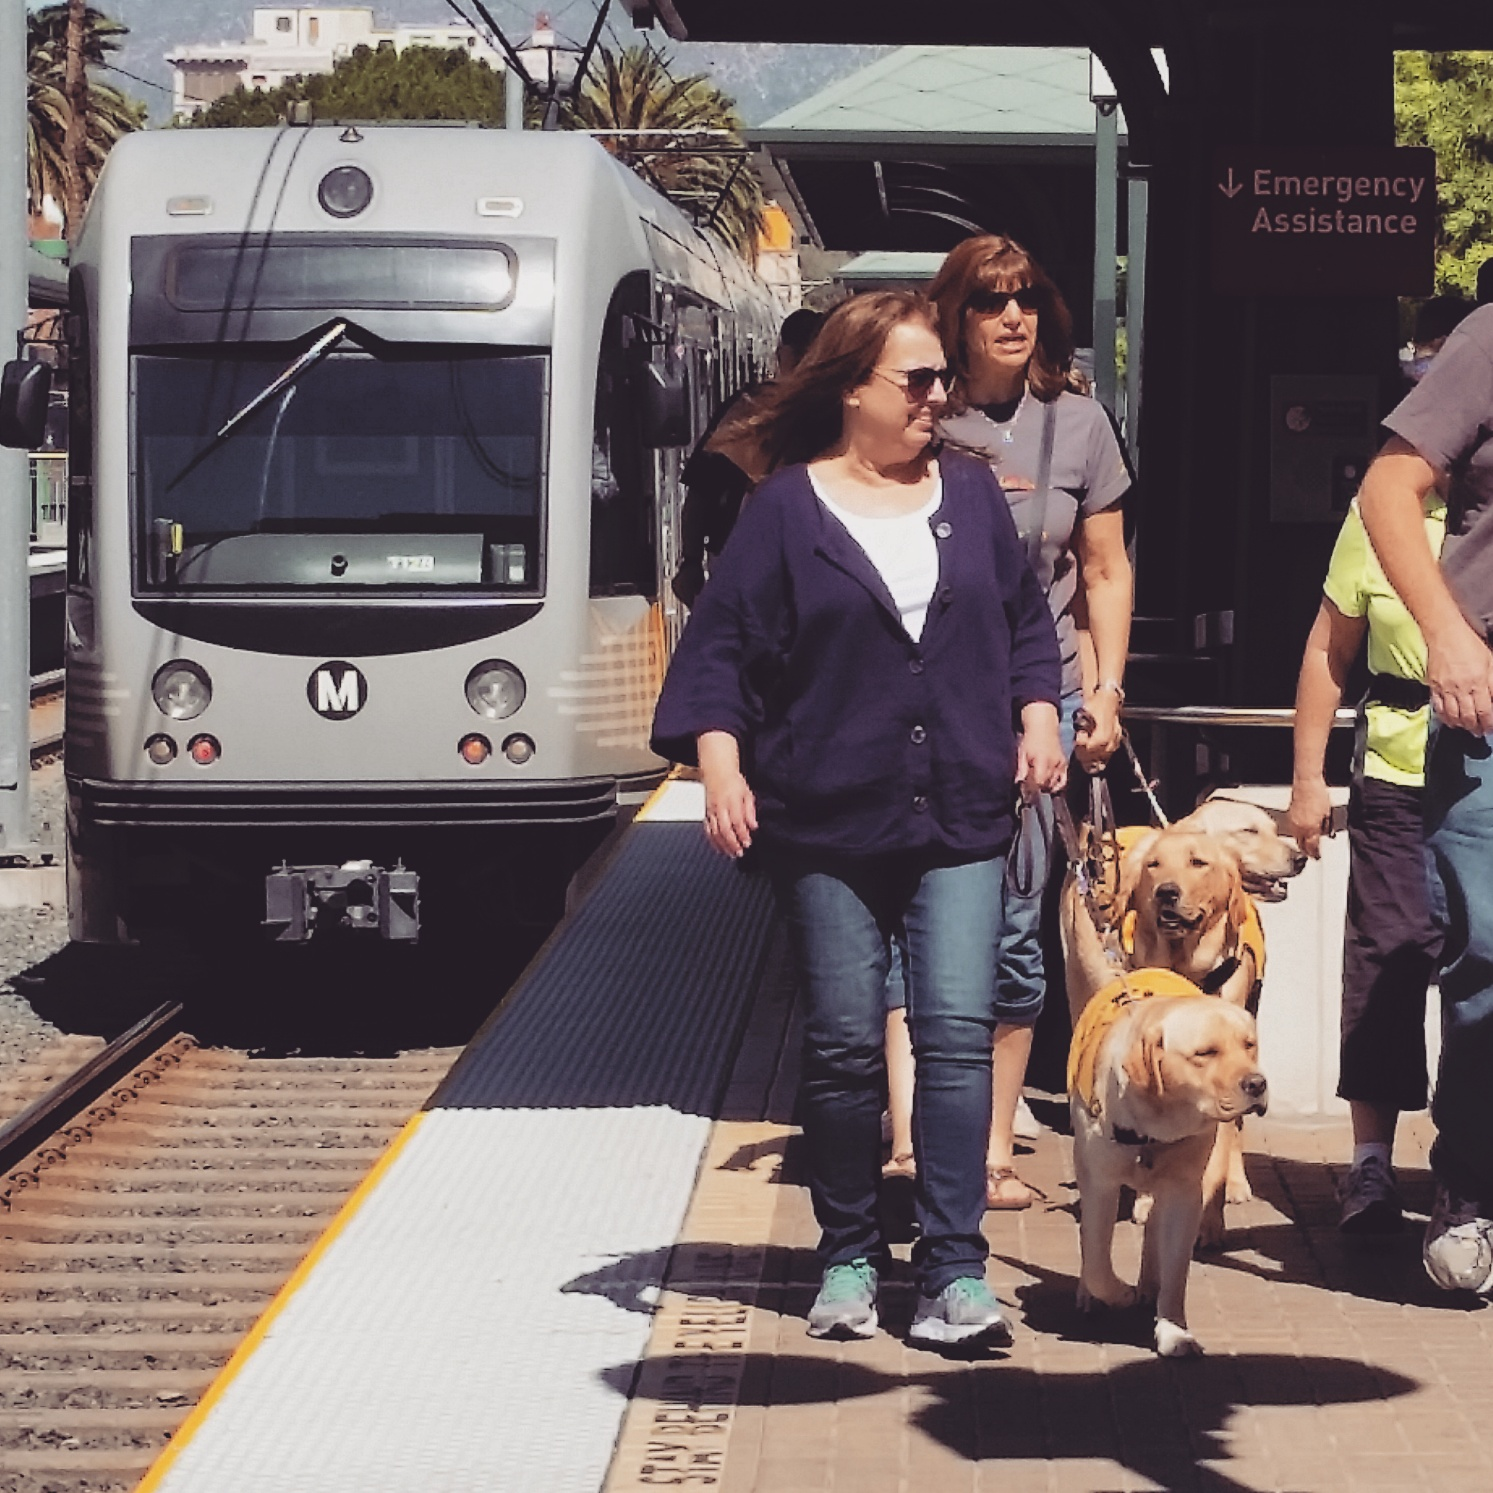 ART OF TRANSIT: Guide dogs on a training day on the Gold Line in Pasadena.